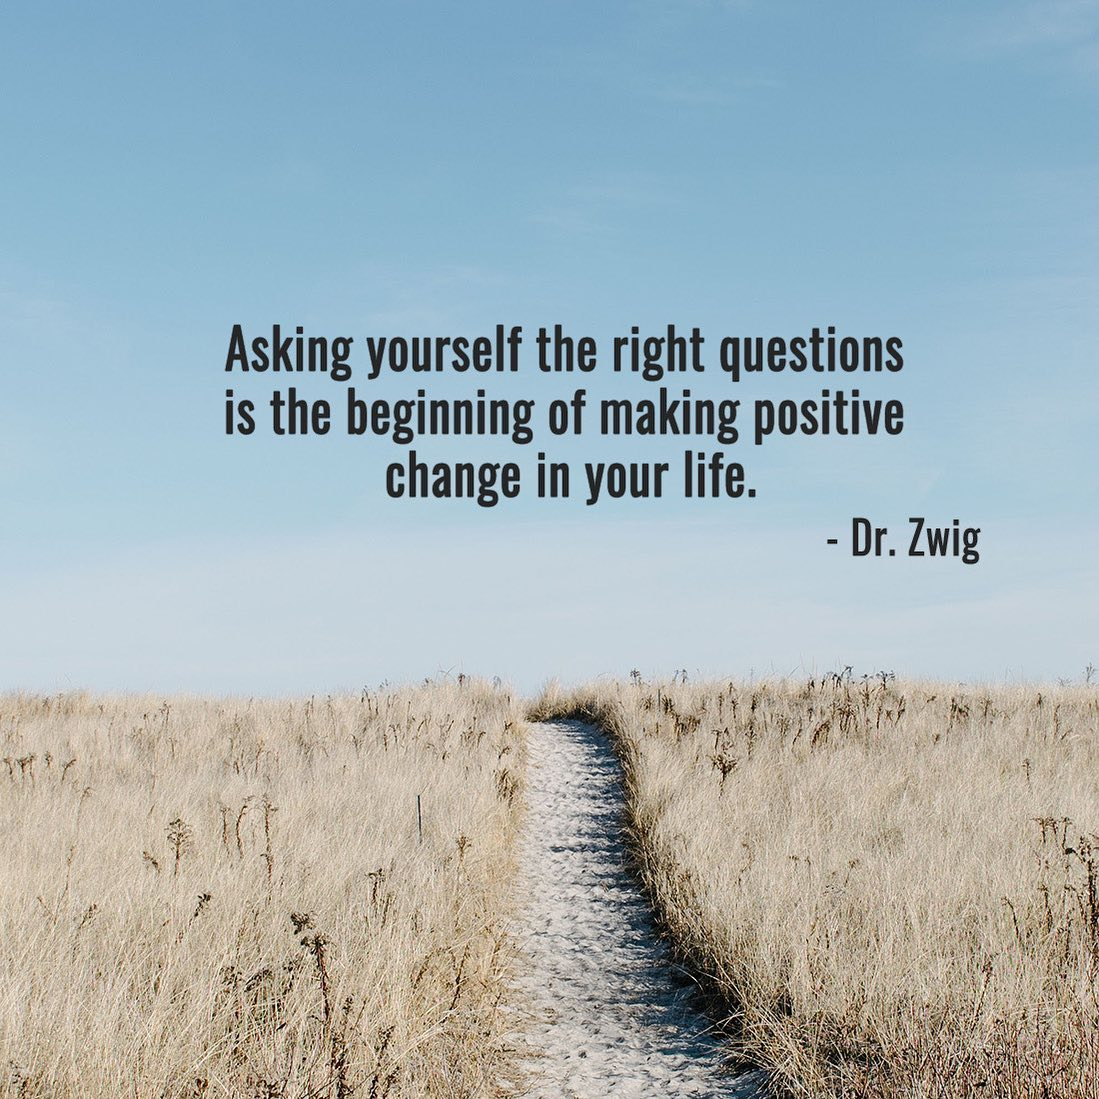 Asking yourself the right questions is the beginning of making positive change in your life